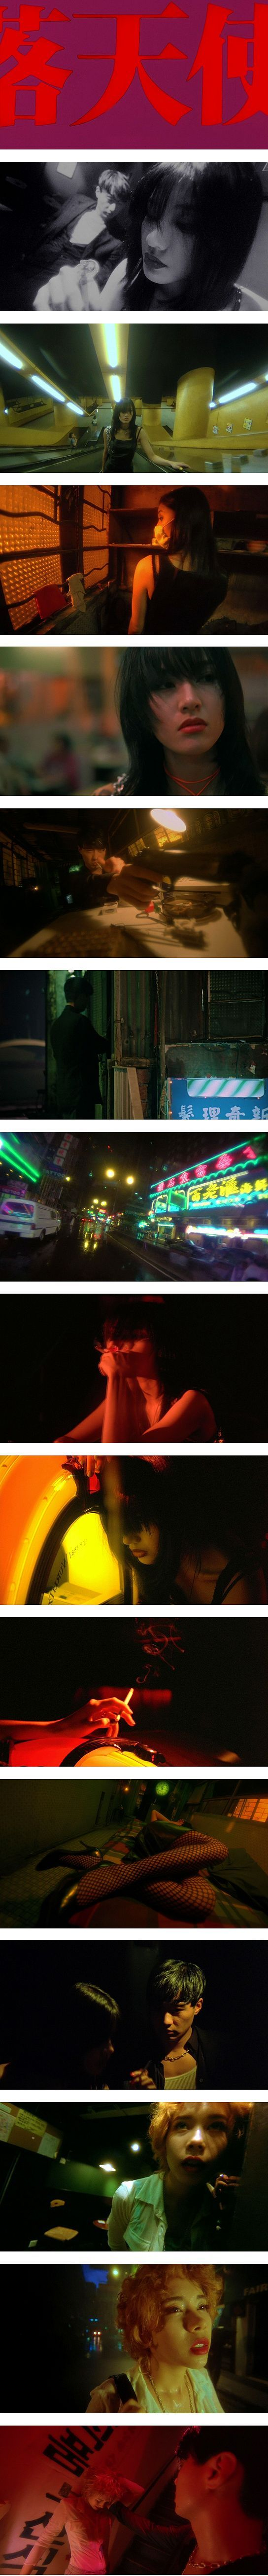 """Fallen Angels"" (1995) by Wong Kar-Wai (Hong Kong) with Christopher Doyle as the director of photo:"